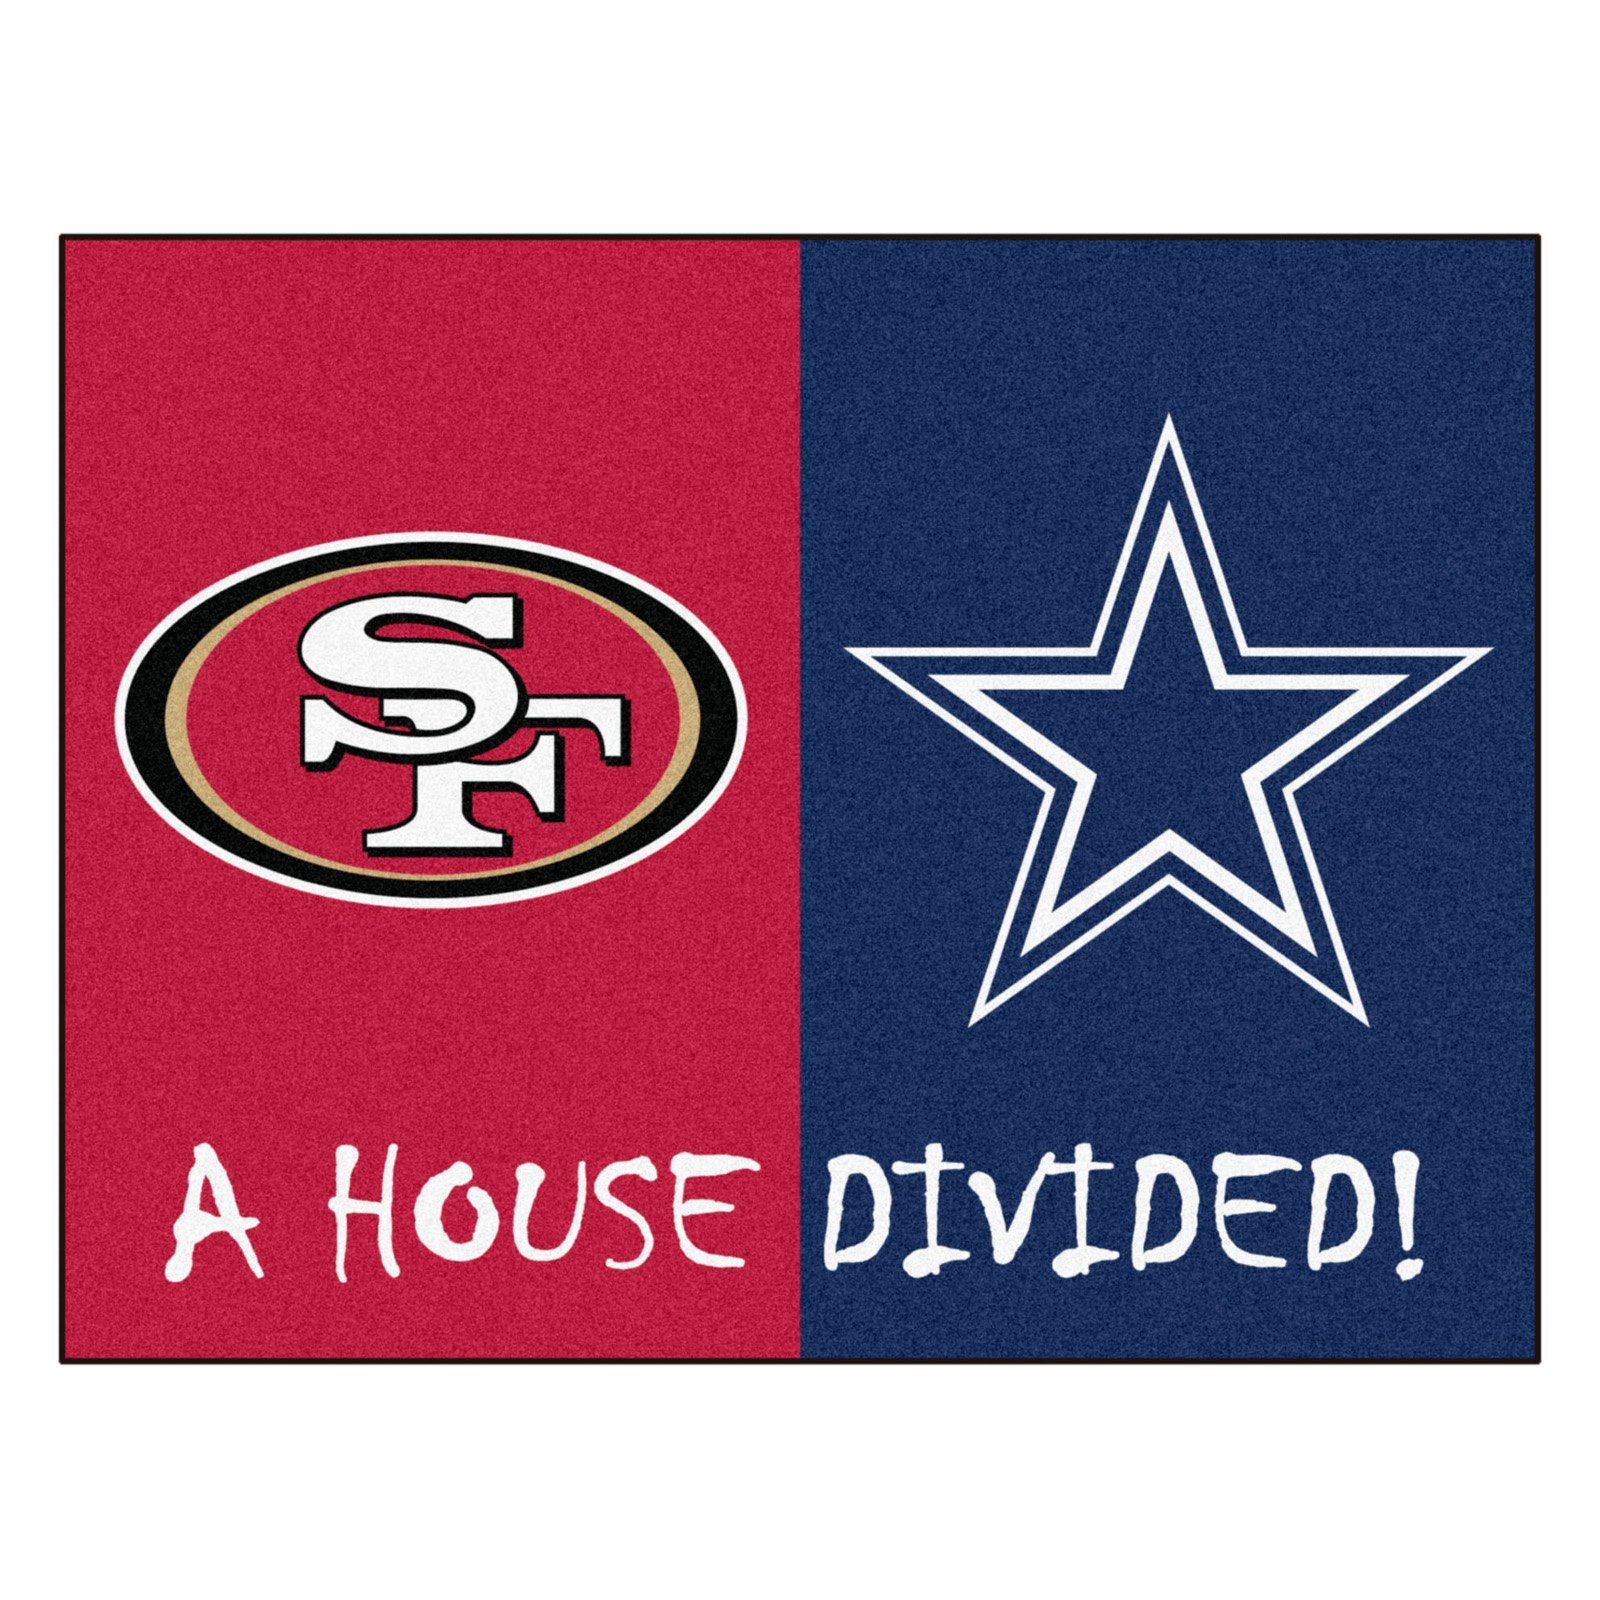 Fan Mats NFL Football House Divided Indoor Rug in 2019